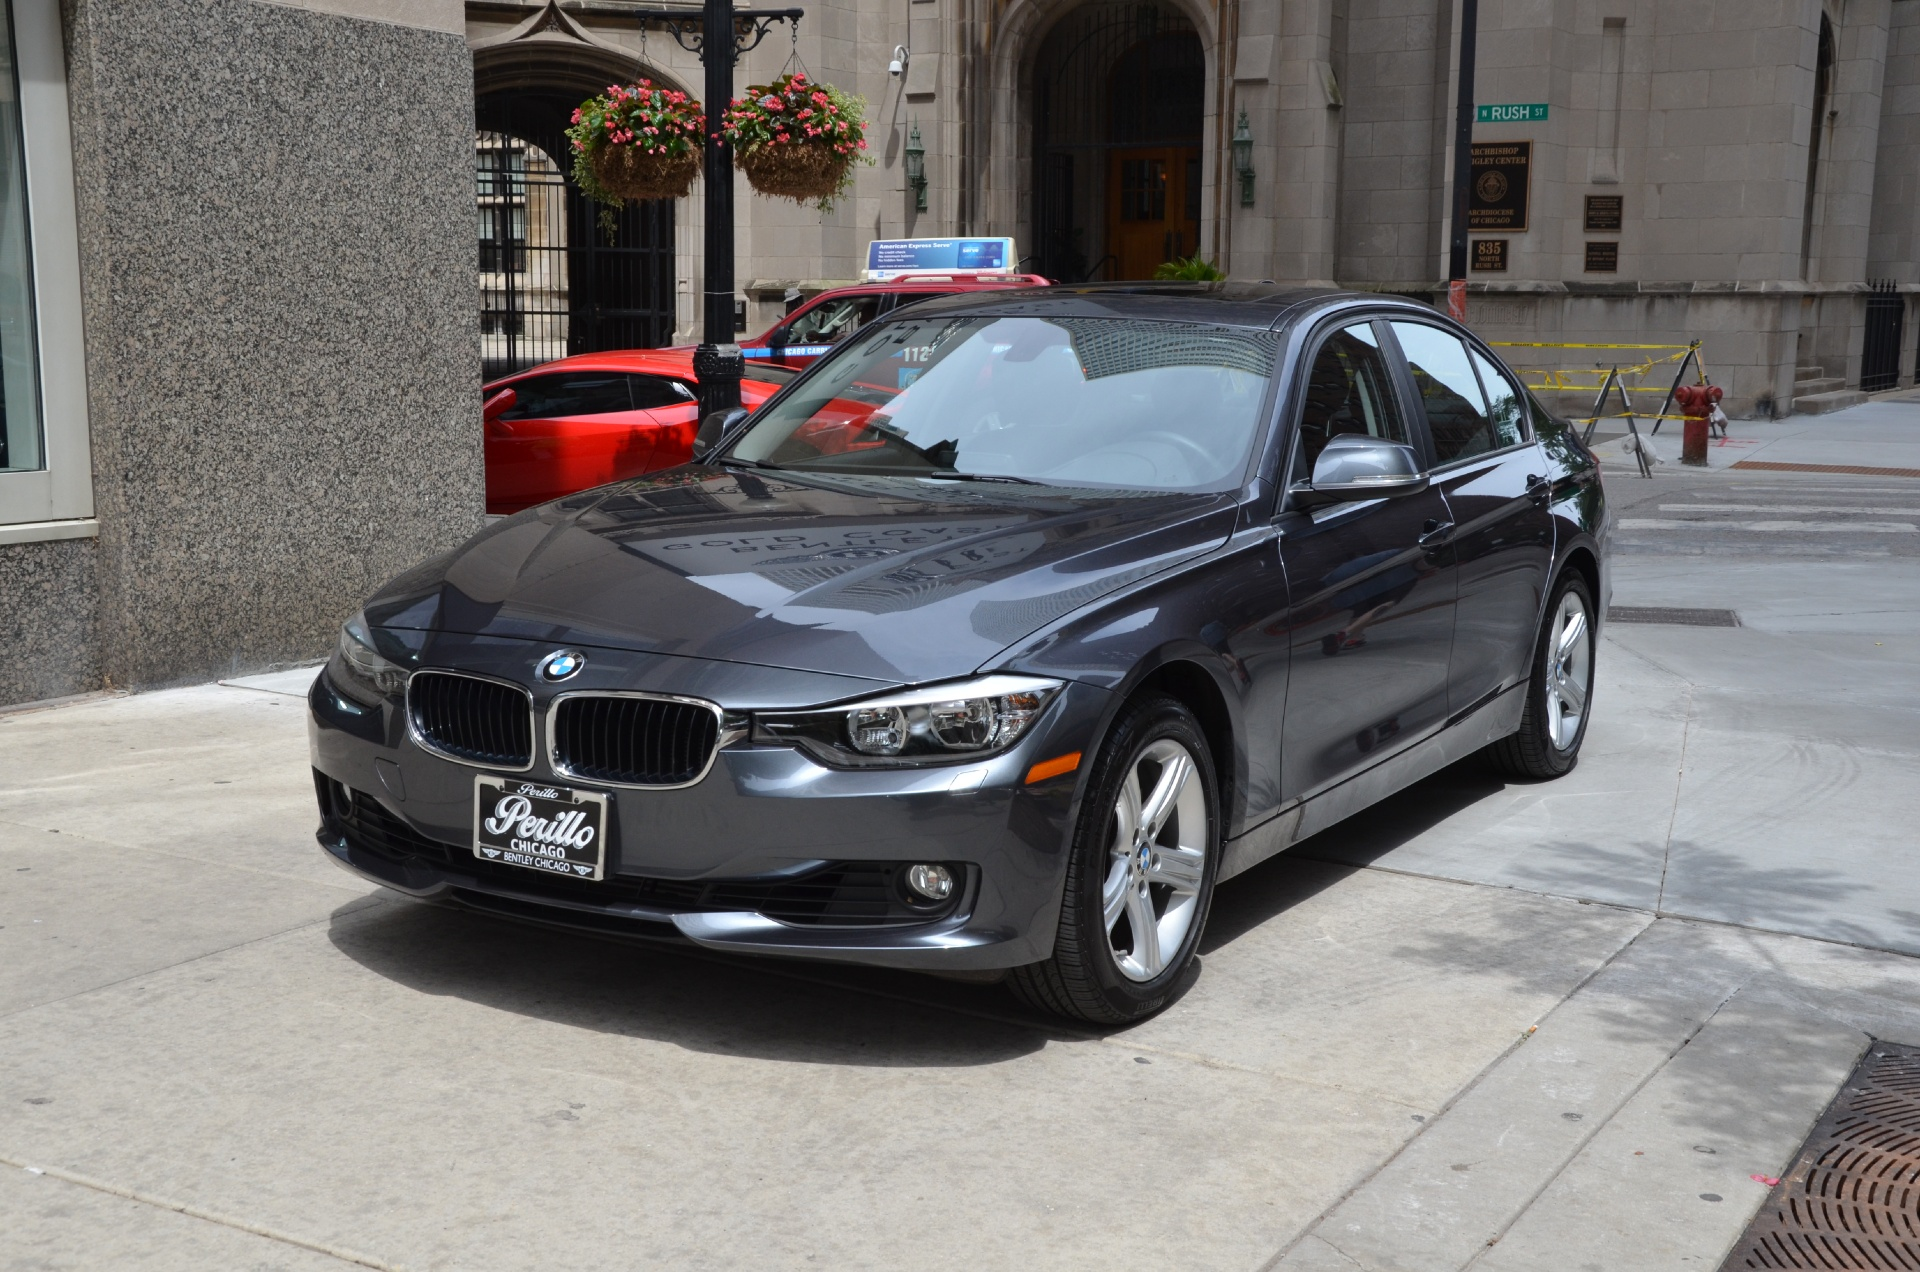 2013 bmw 3 series 328i xdrive stock m422a for sale near chicago il il bmw dealer. Black Bedroom Furniture Sets. Home Design Ideas